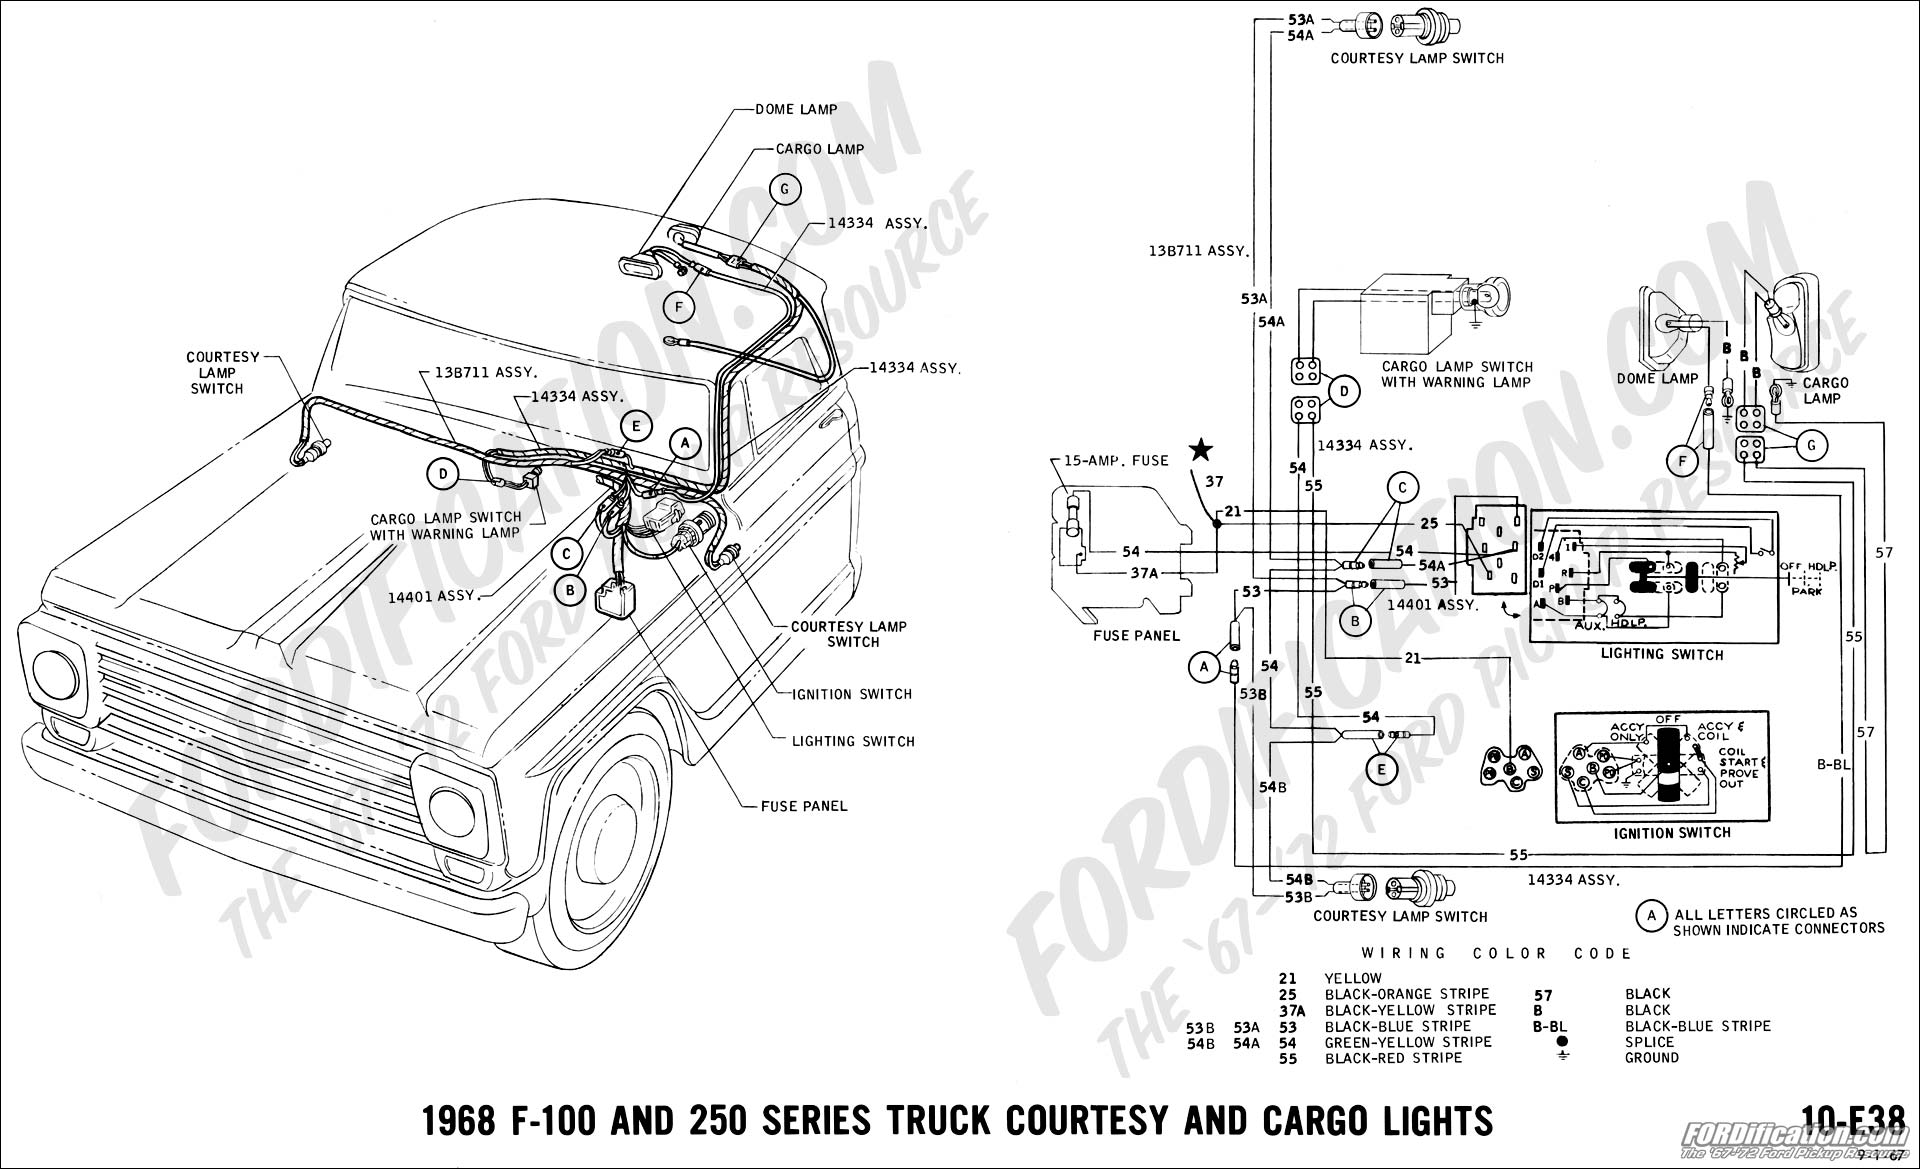 Remarkable 71 Ford F100 Wiring Diagram Wiring Diagram Wiring Cloud Onicaxeromohammedshrineorg